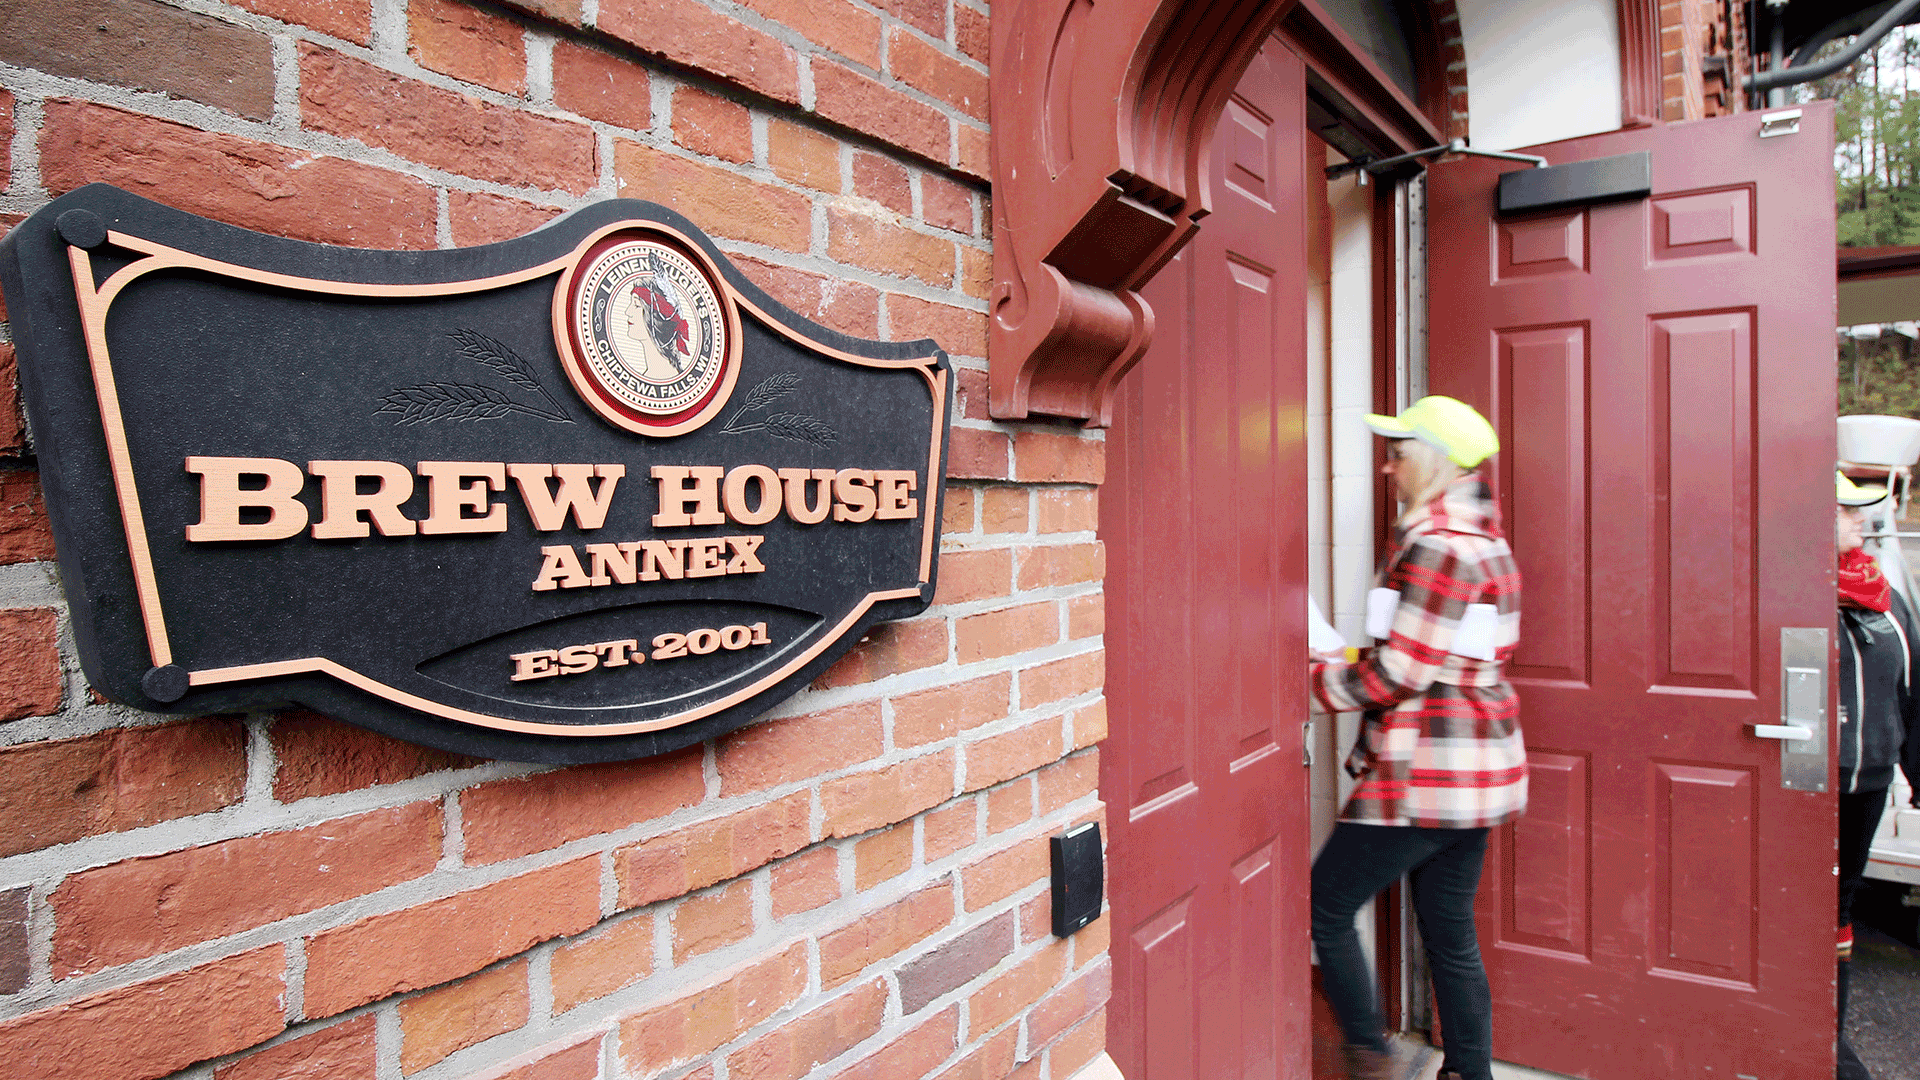 Brew House entrance sign